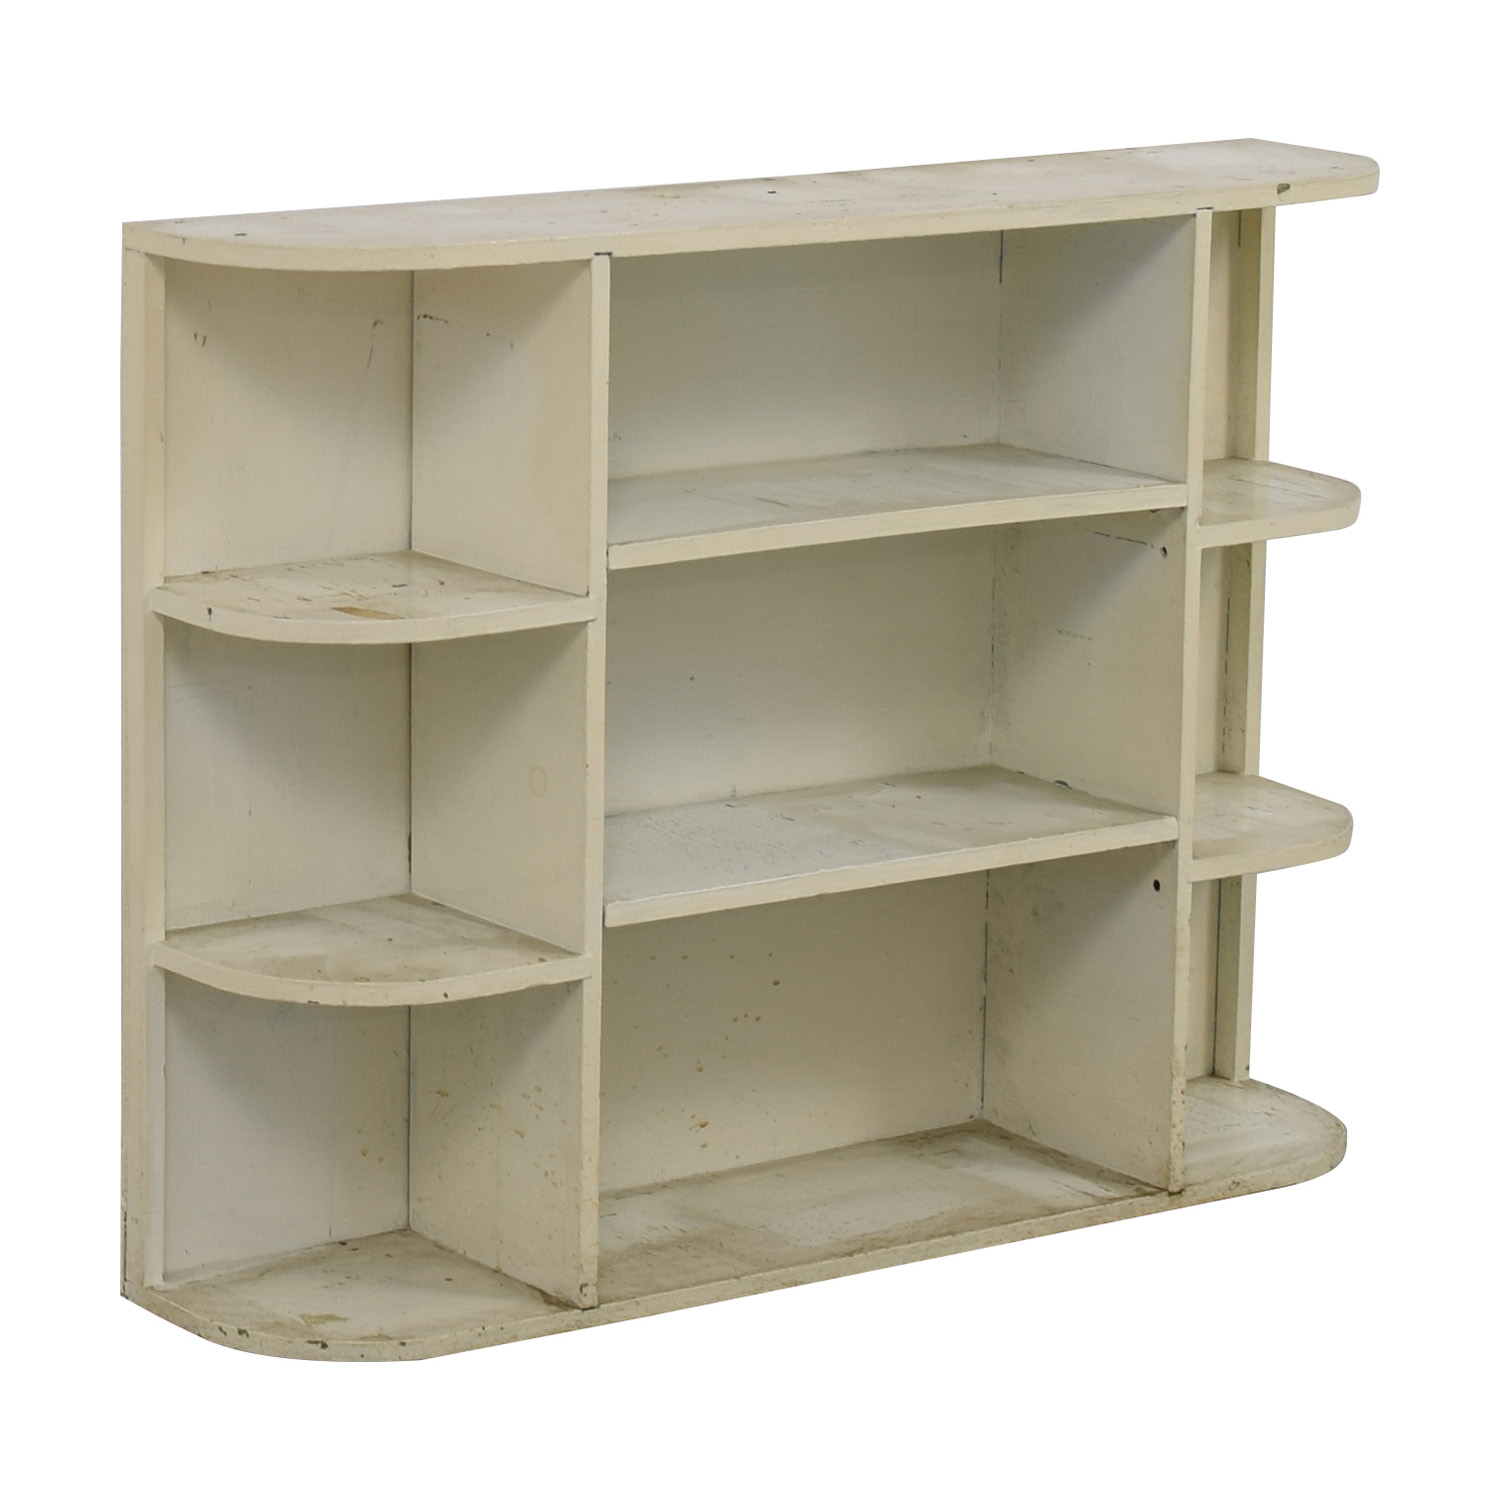 90 Off Rustic White Painted Book Shelf Storage